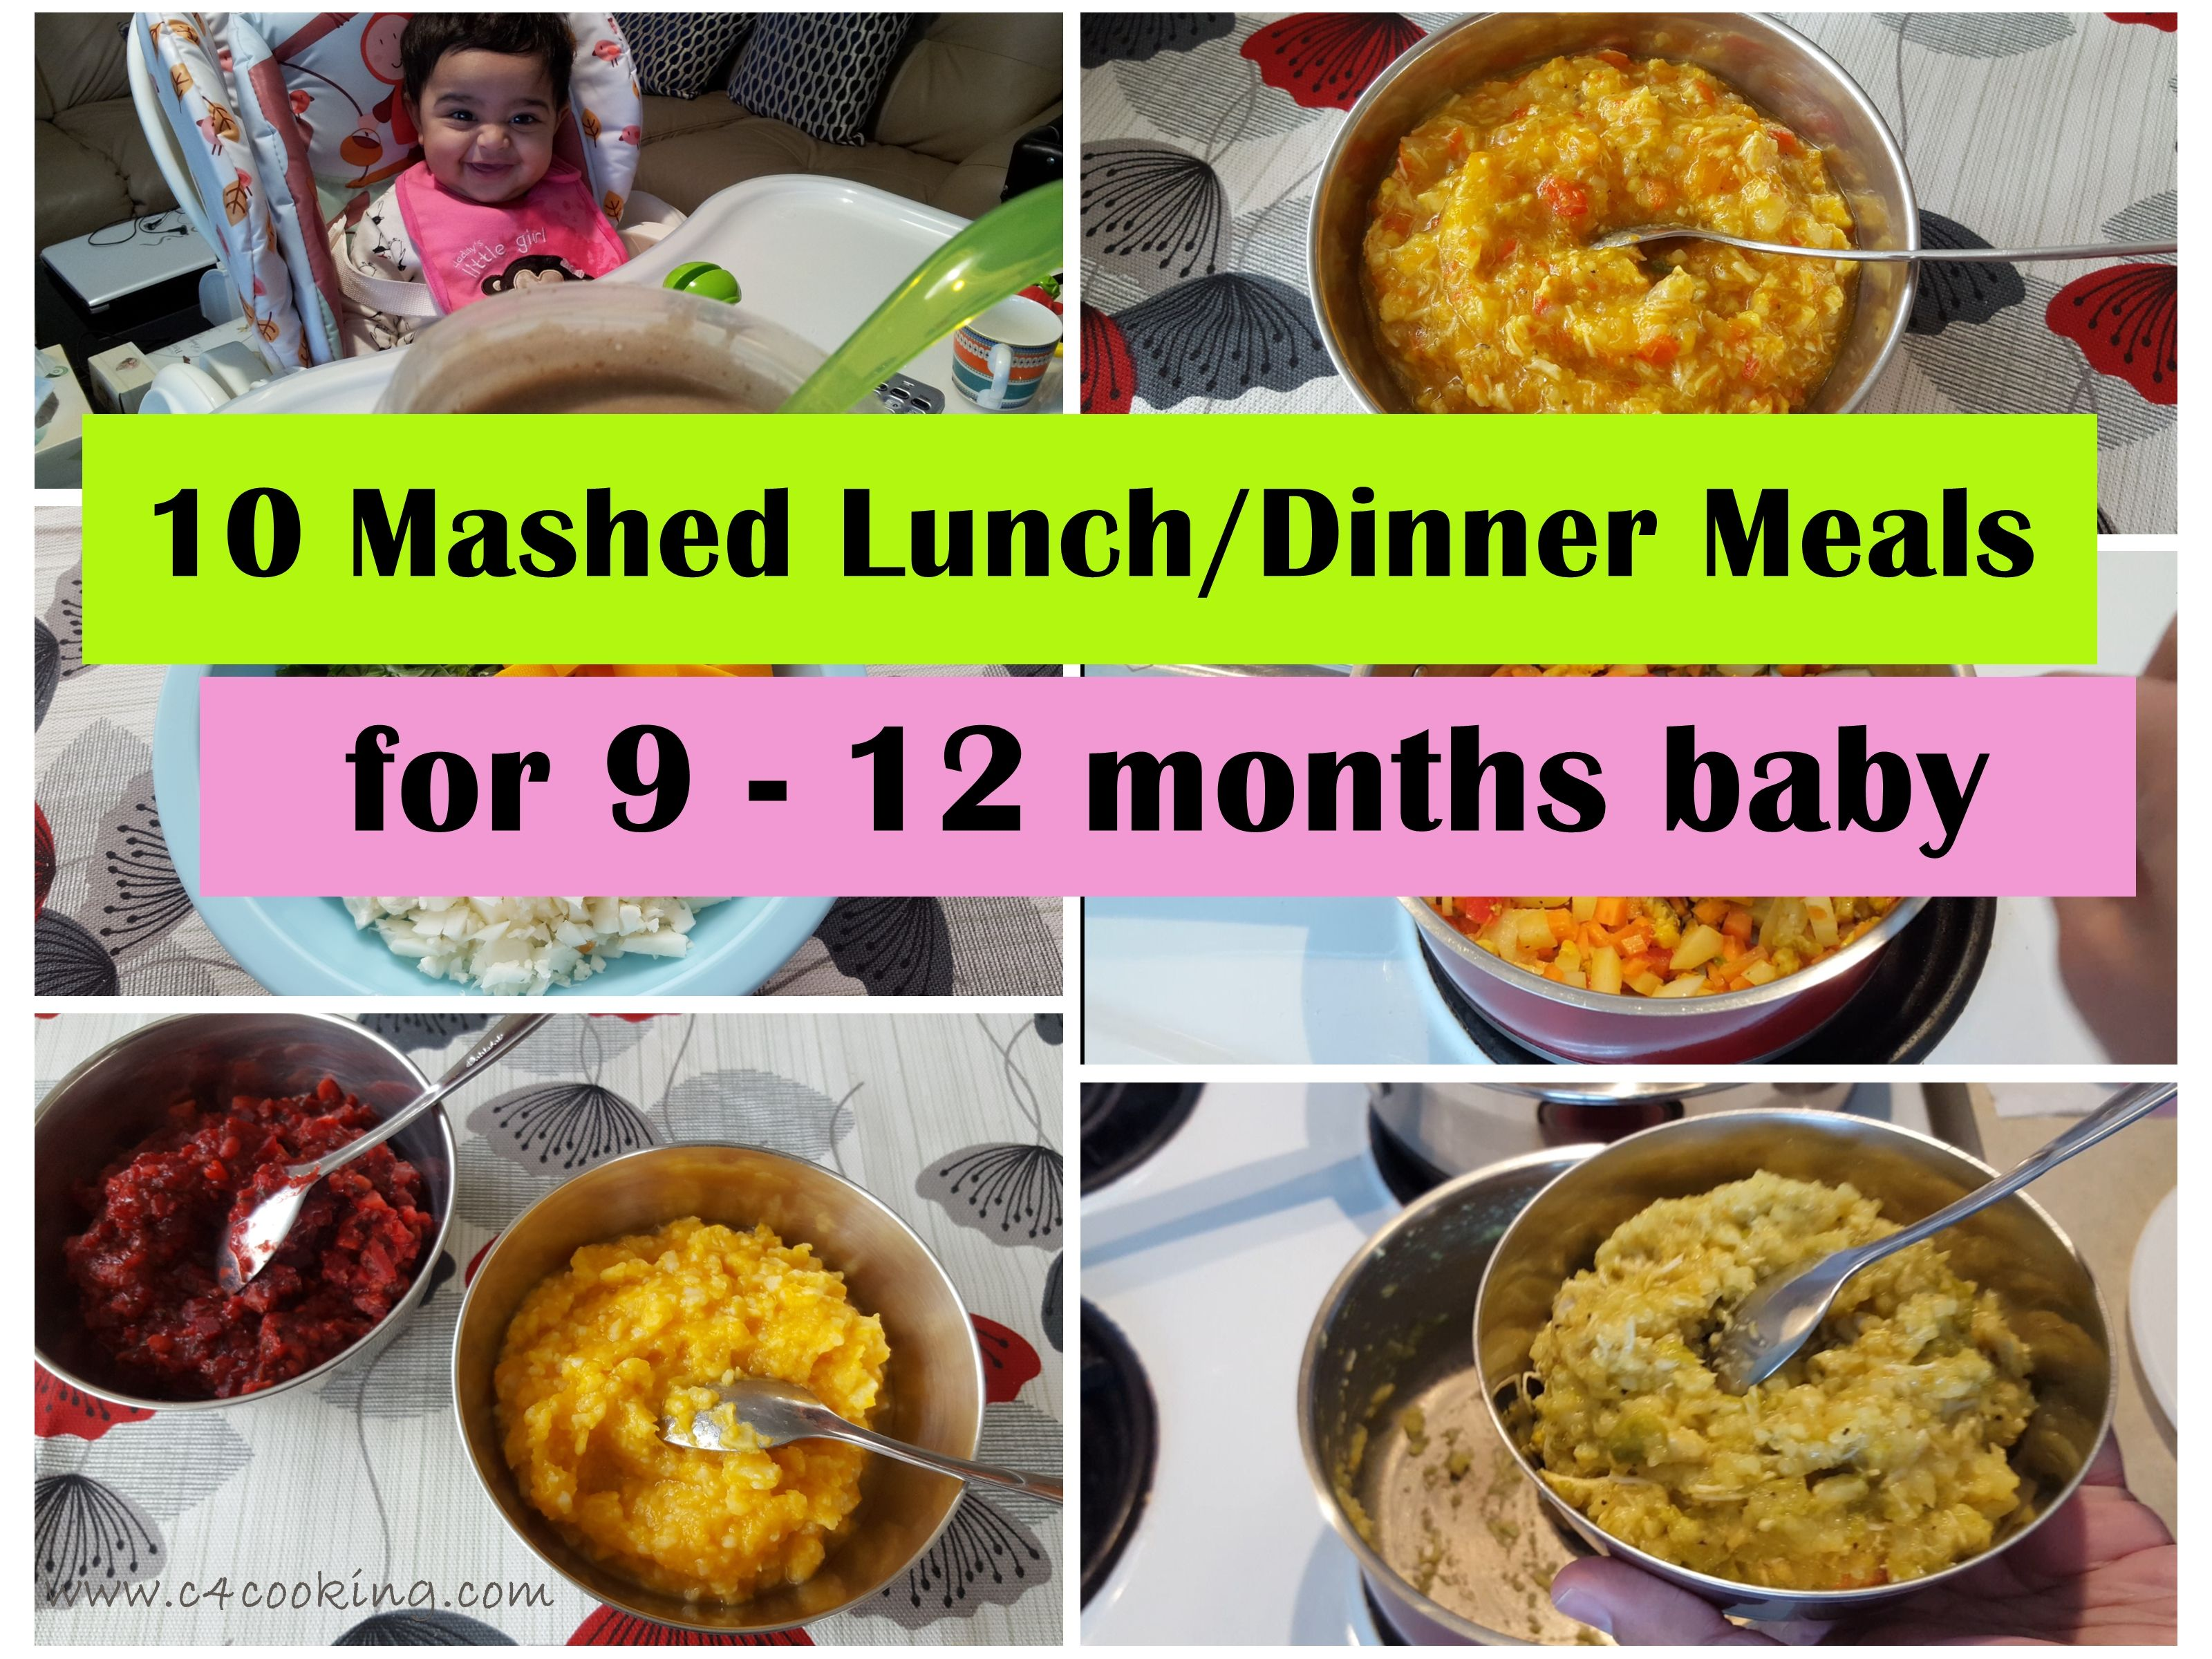 10 mashed meals for 9-12 months baby.. | homemade baby foods